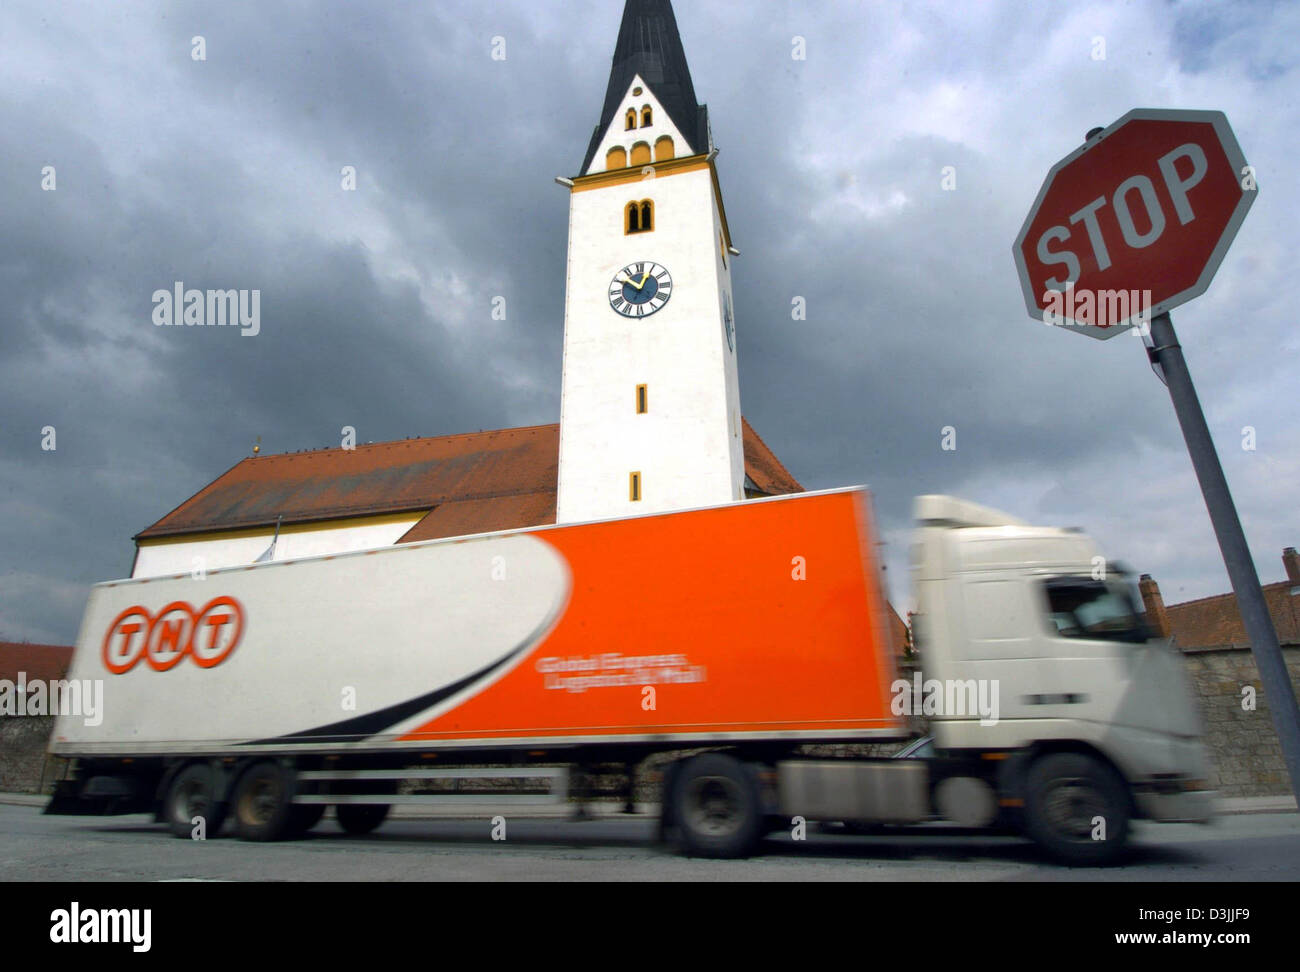 (dpa) - A large lorry drives along the through road through the town of Strasskirchen, Germany 11 April 2005. German - Stock Image